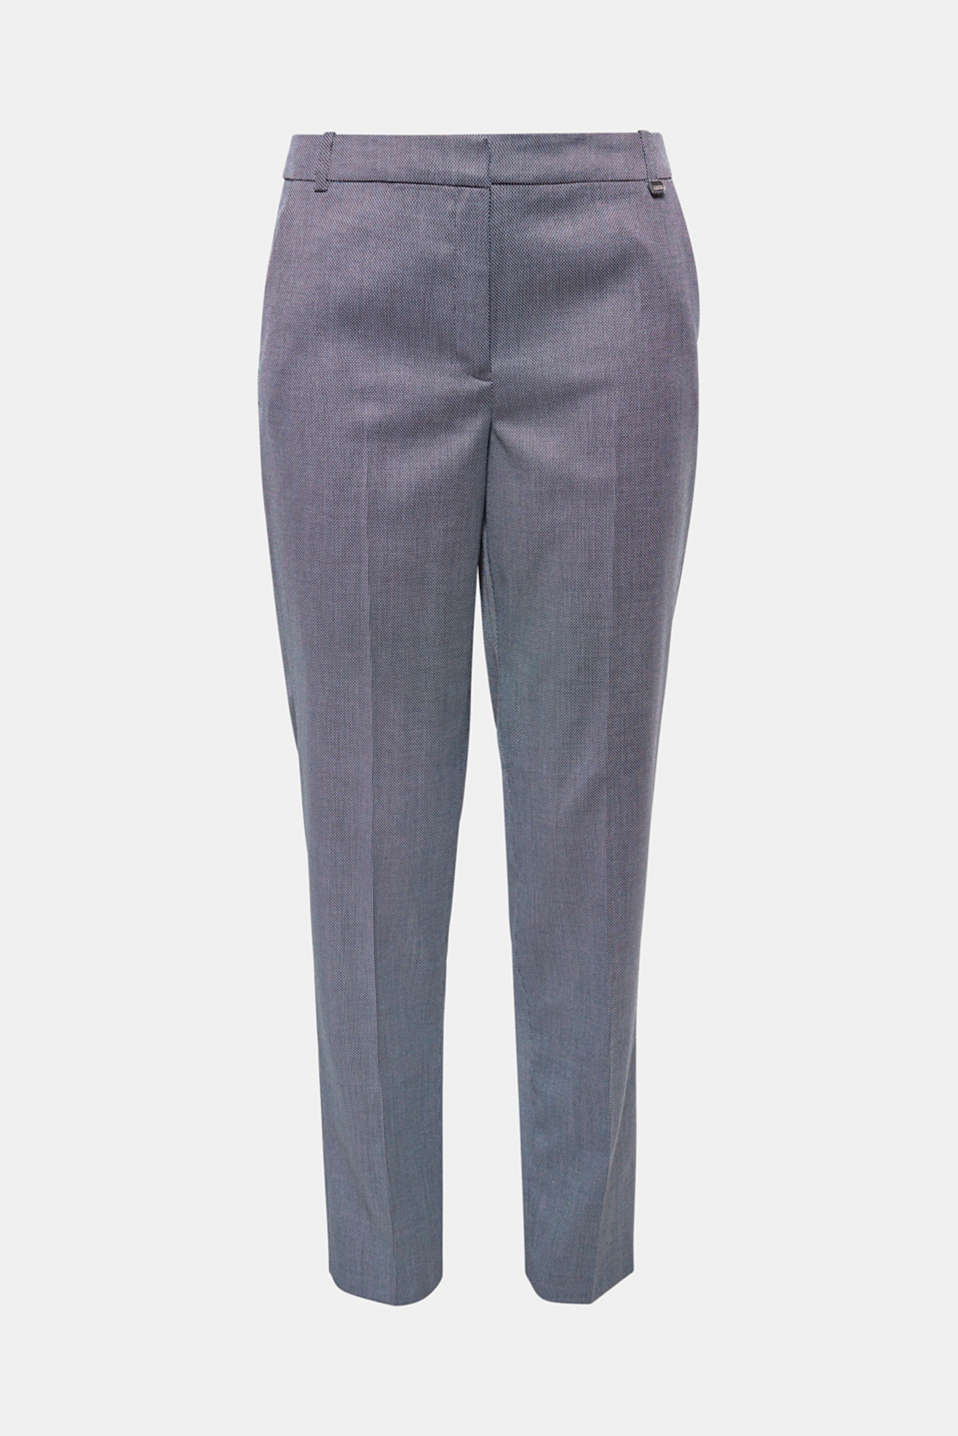 The fine two-tone texture and the delicate shimmer of the material make these softly flowing woven trousers with stretch for comfort a summery business style!